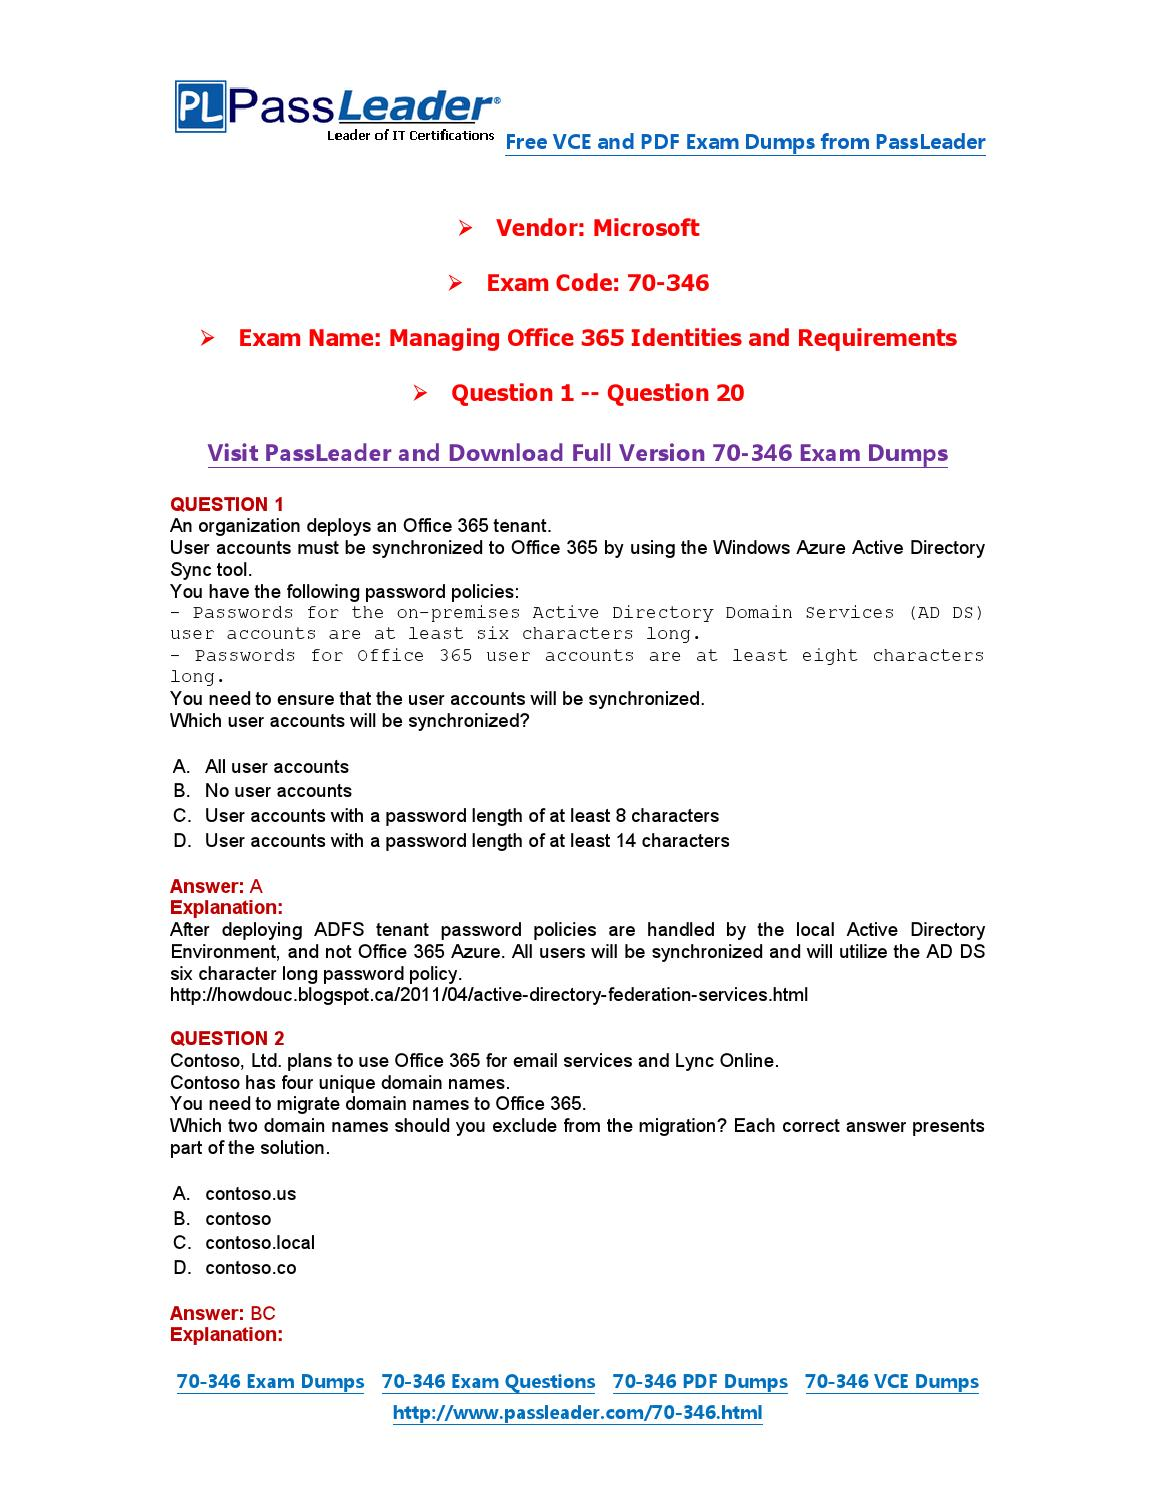 70-346 Exam Dumps with PDF and VCE Download (1-20) by PassLeader - issuu